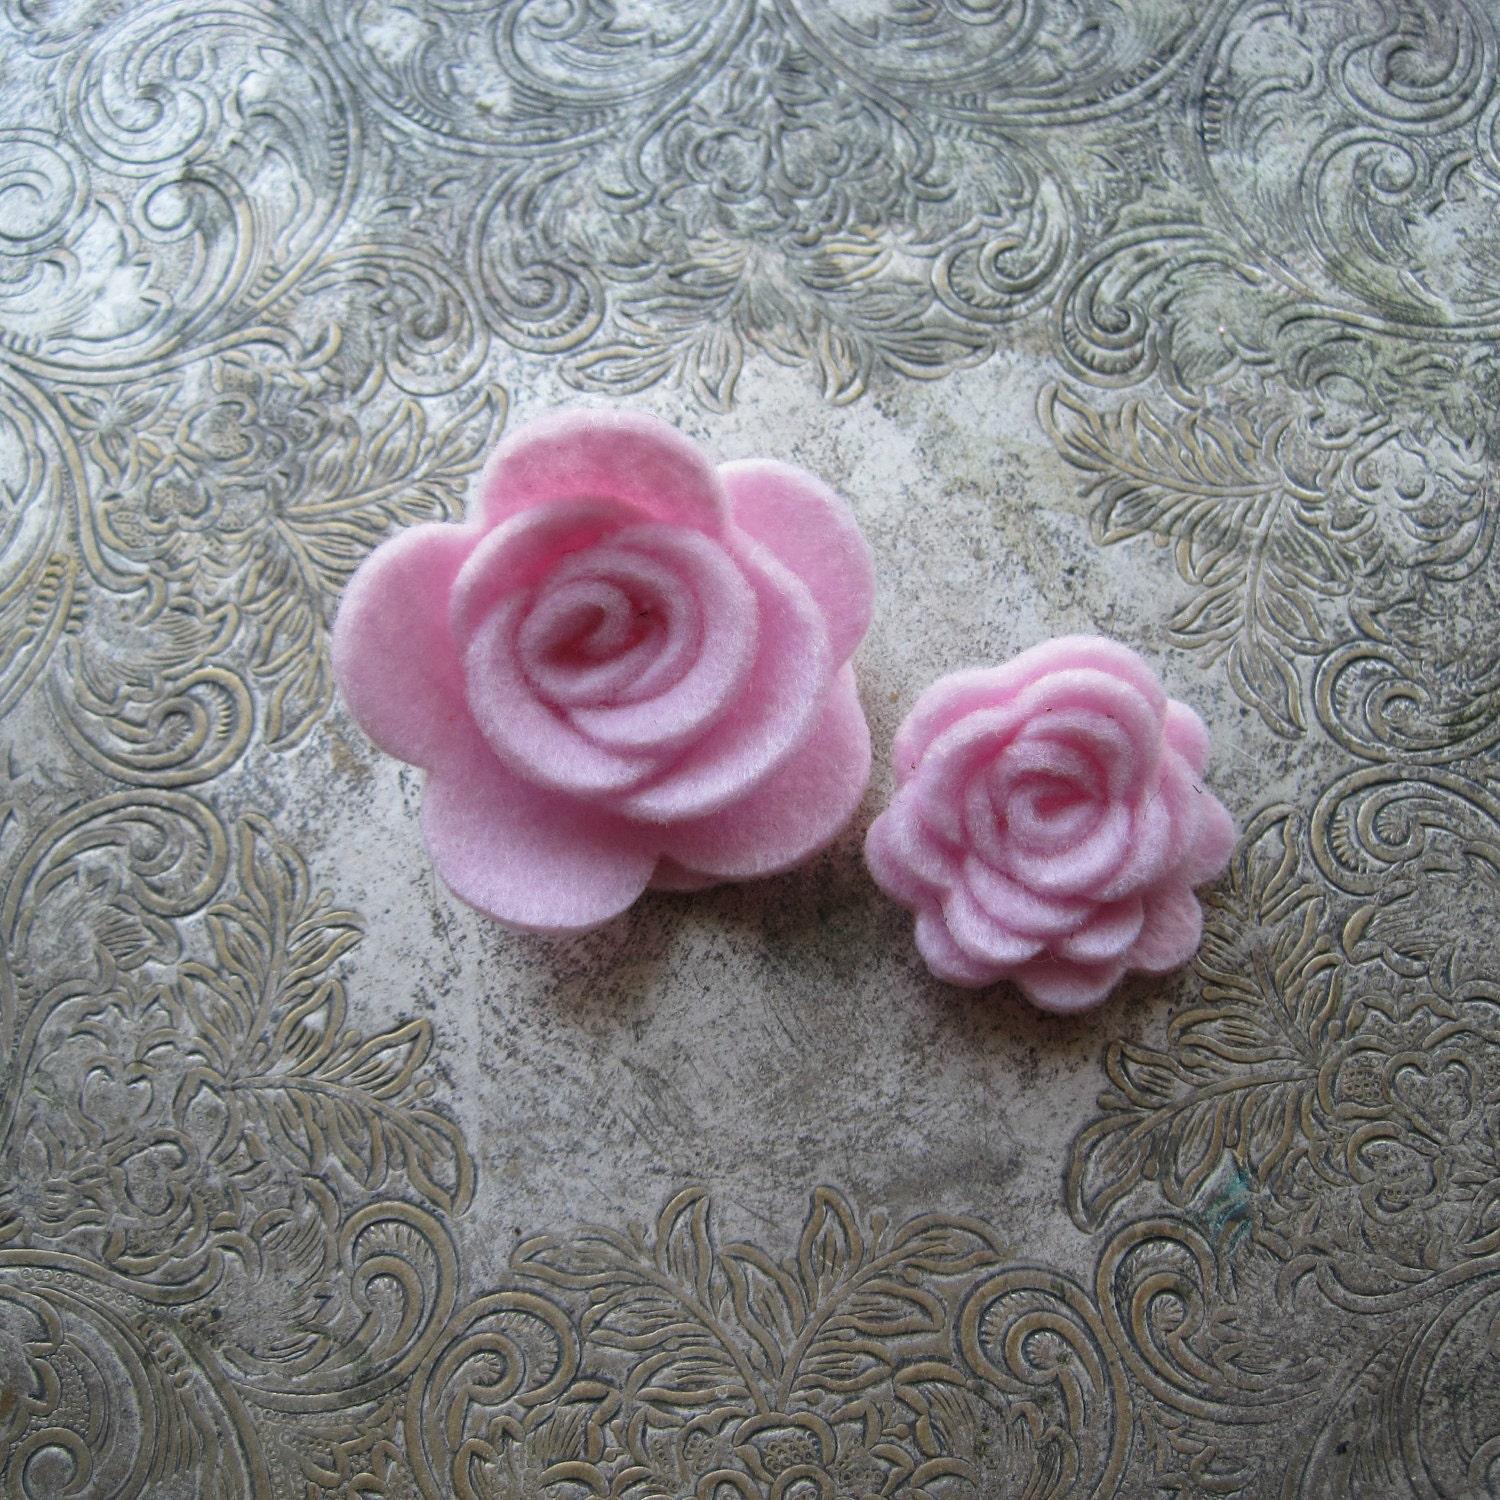 Lot of 20 Felt 3d Roses - Choose your own colors and sizes - Create Your Own diy - Large and Small flowers for headbands, clips, projects,